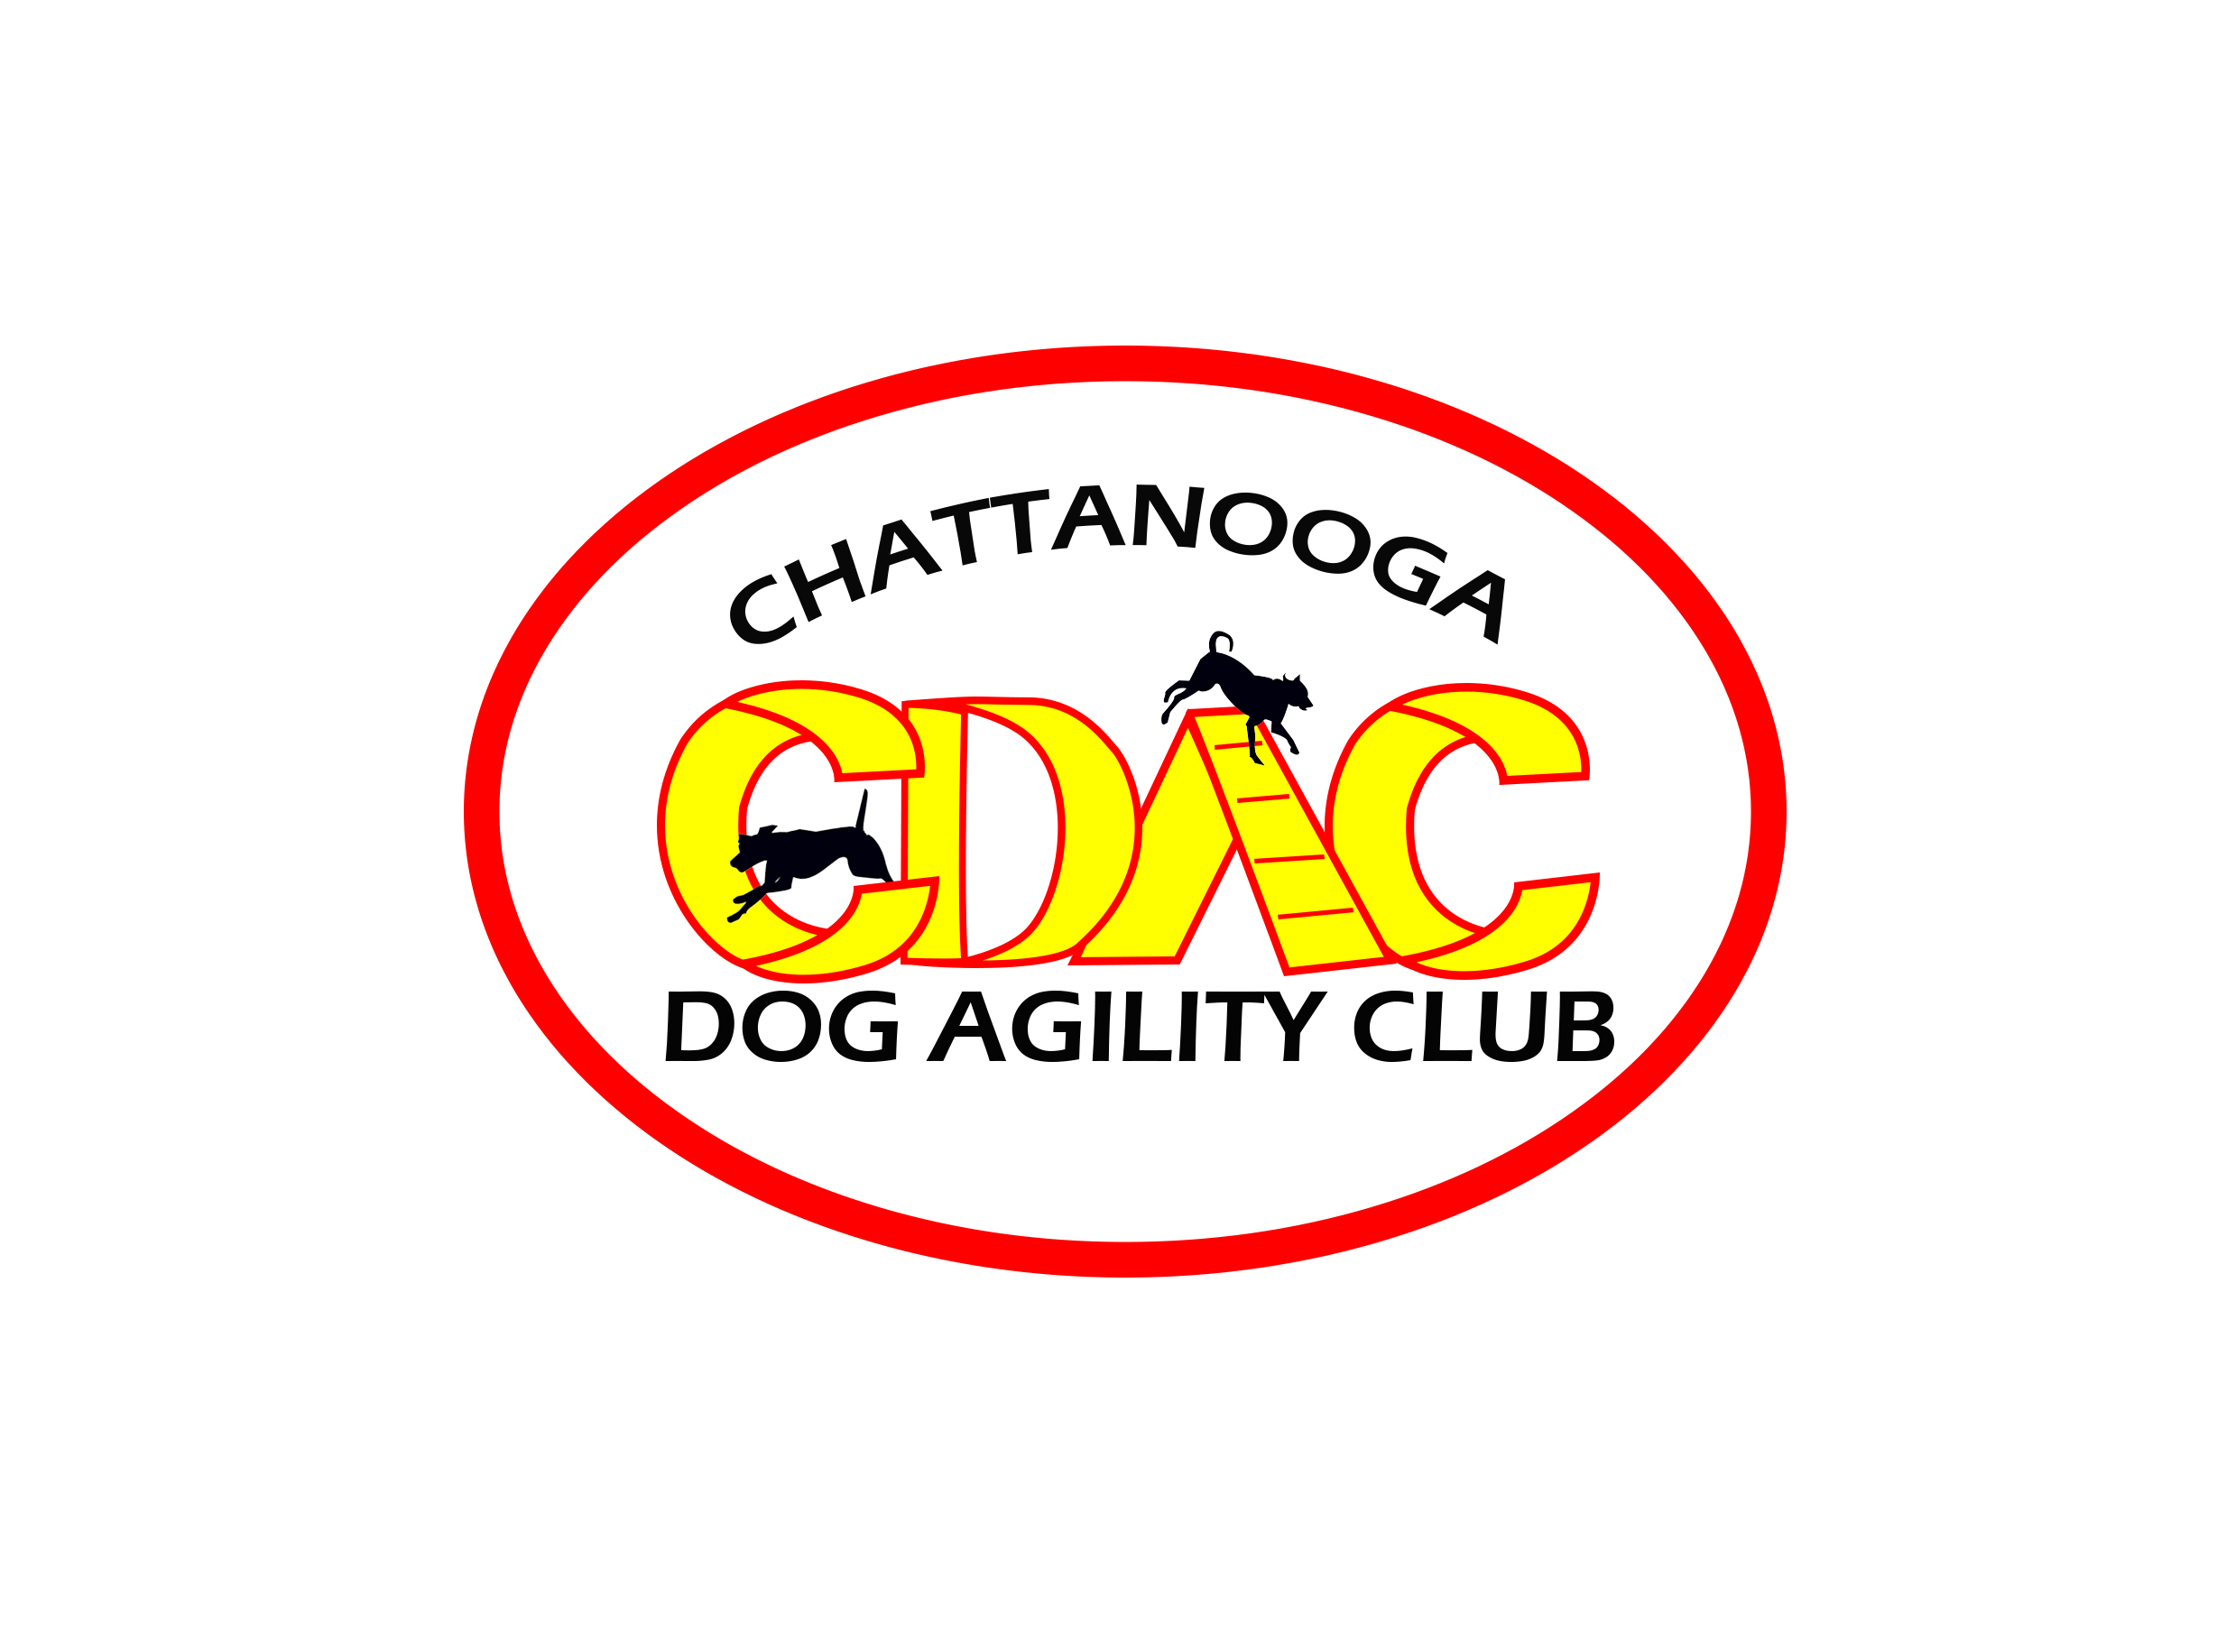 Chattanooga Dog Agility Club